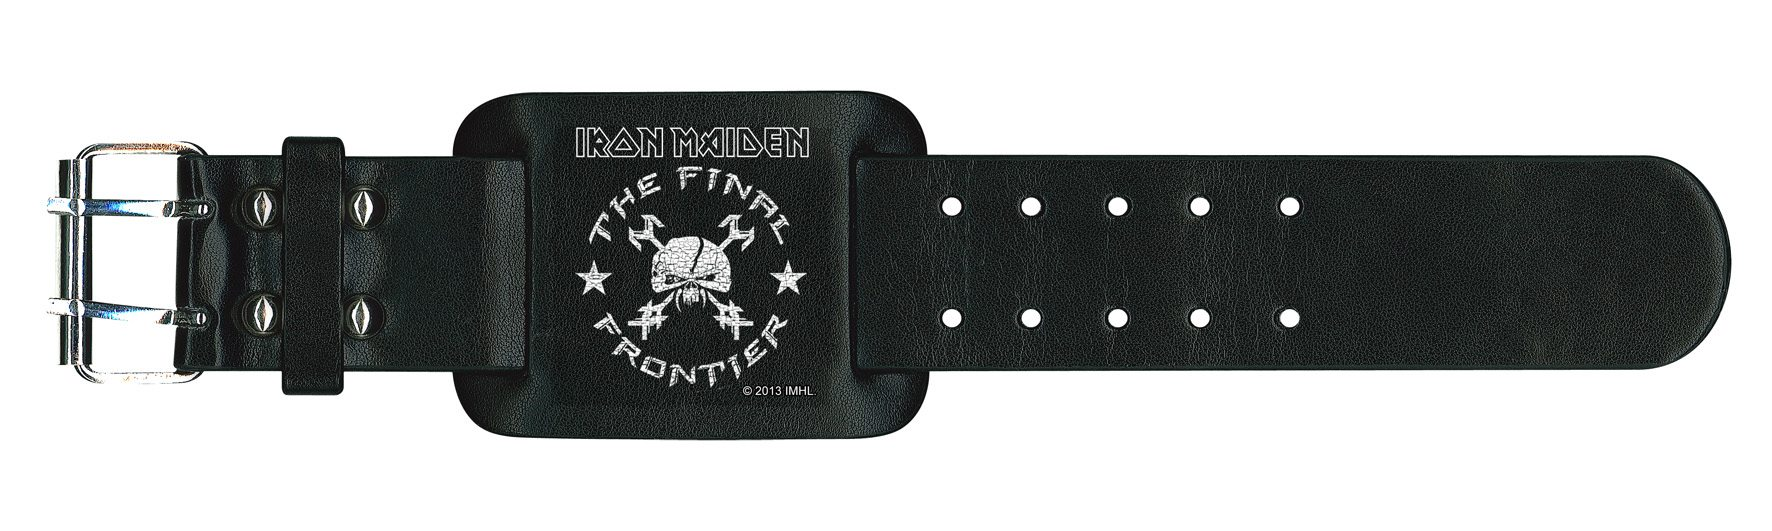 Iron Maiden Leather Wristband The Final Frontier